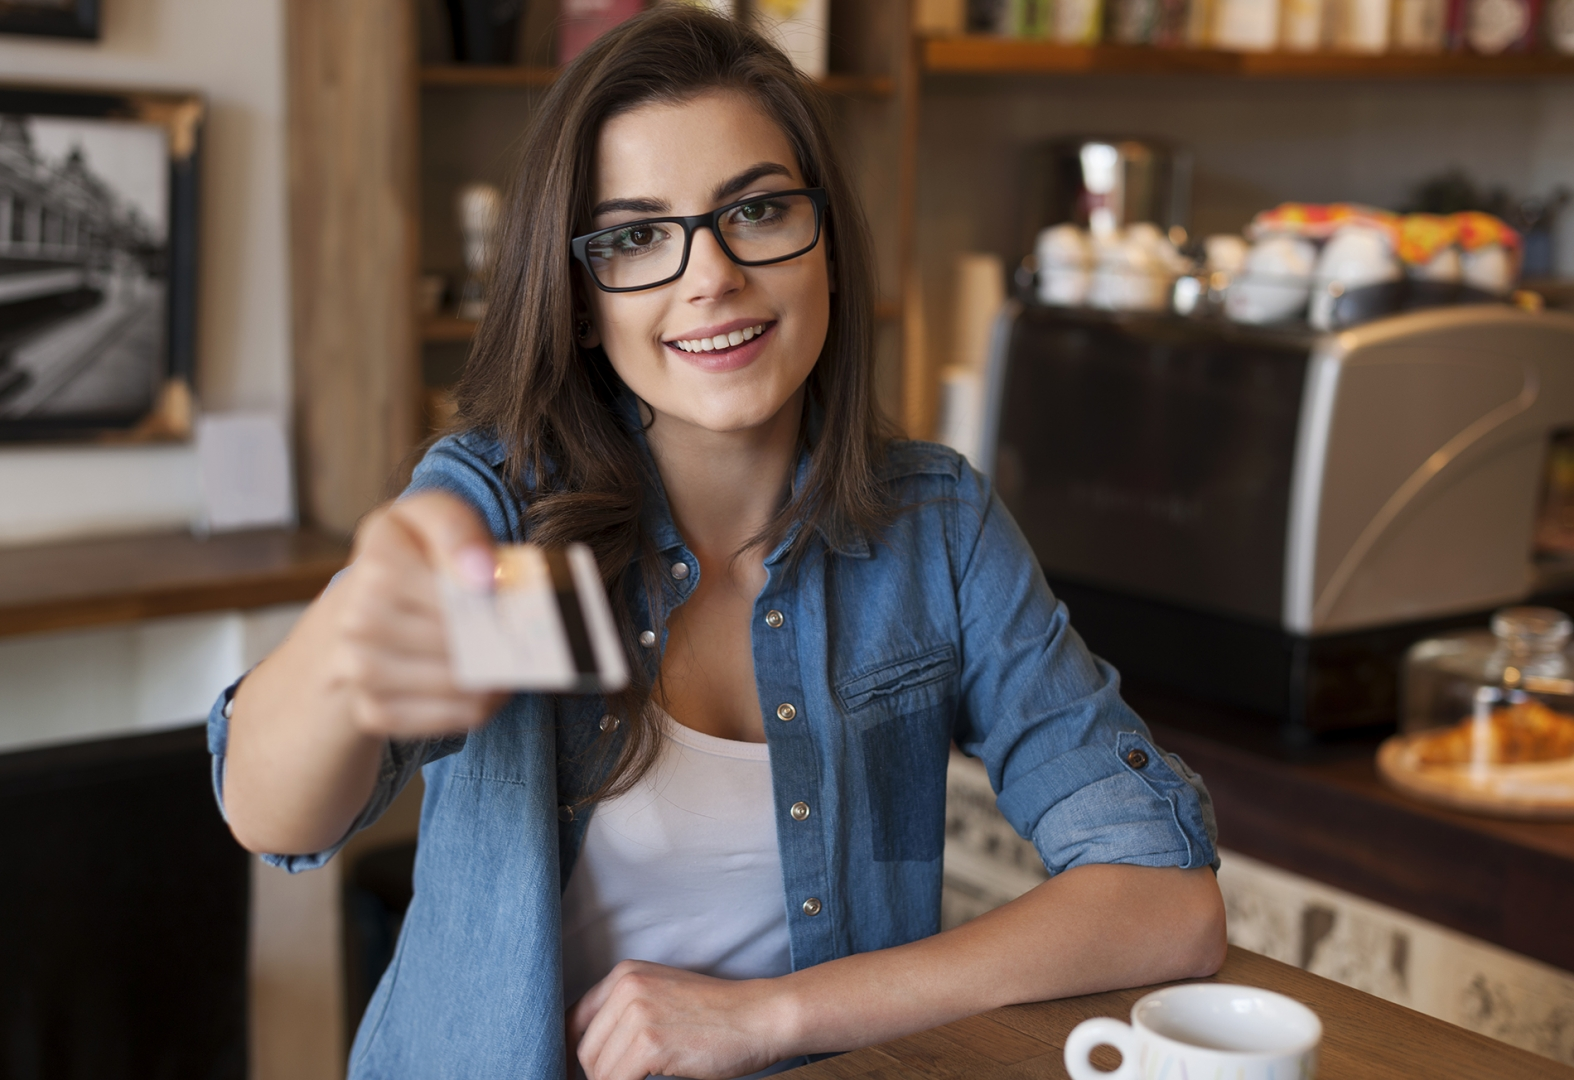 female customer completing credit card transaction